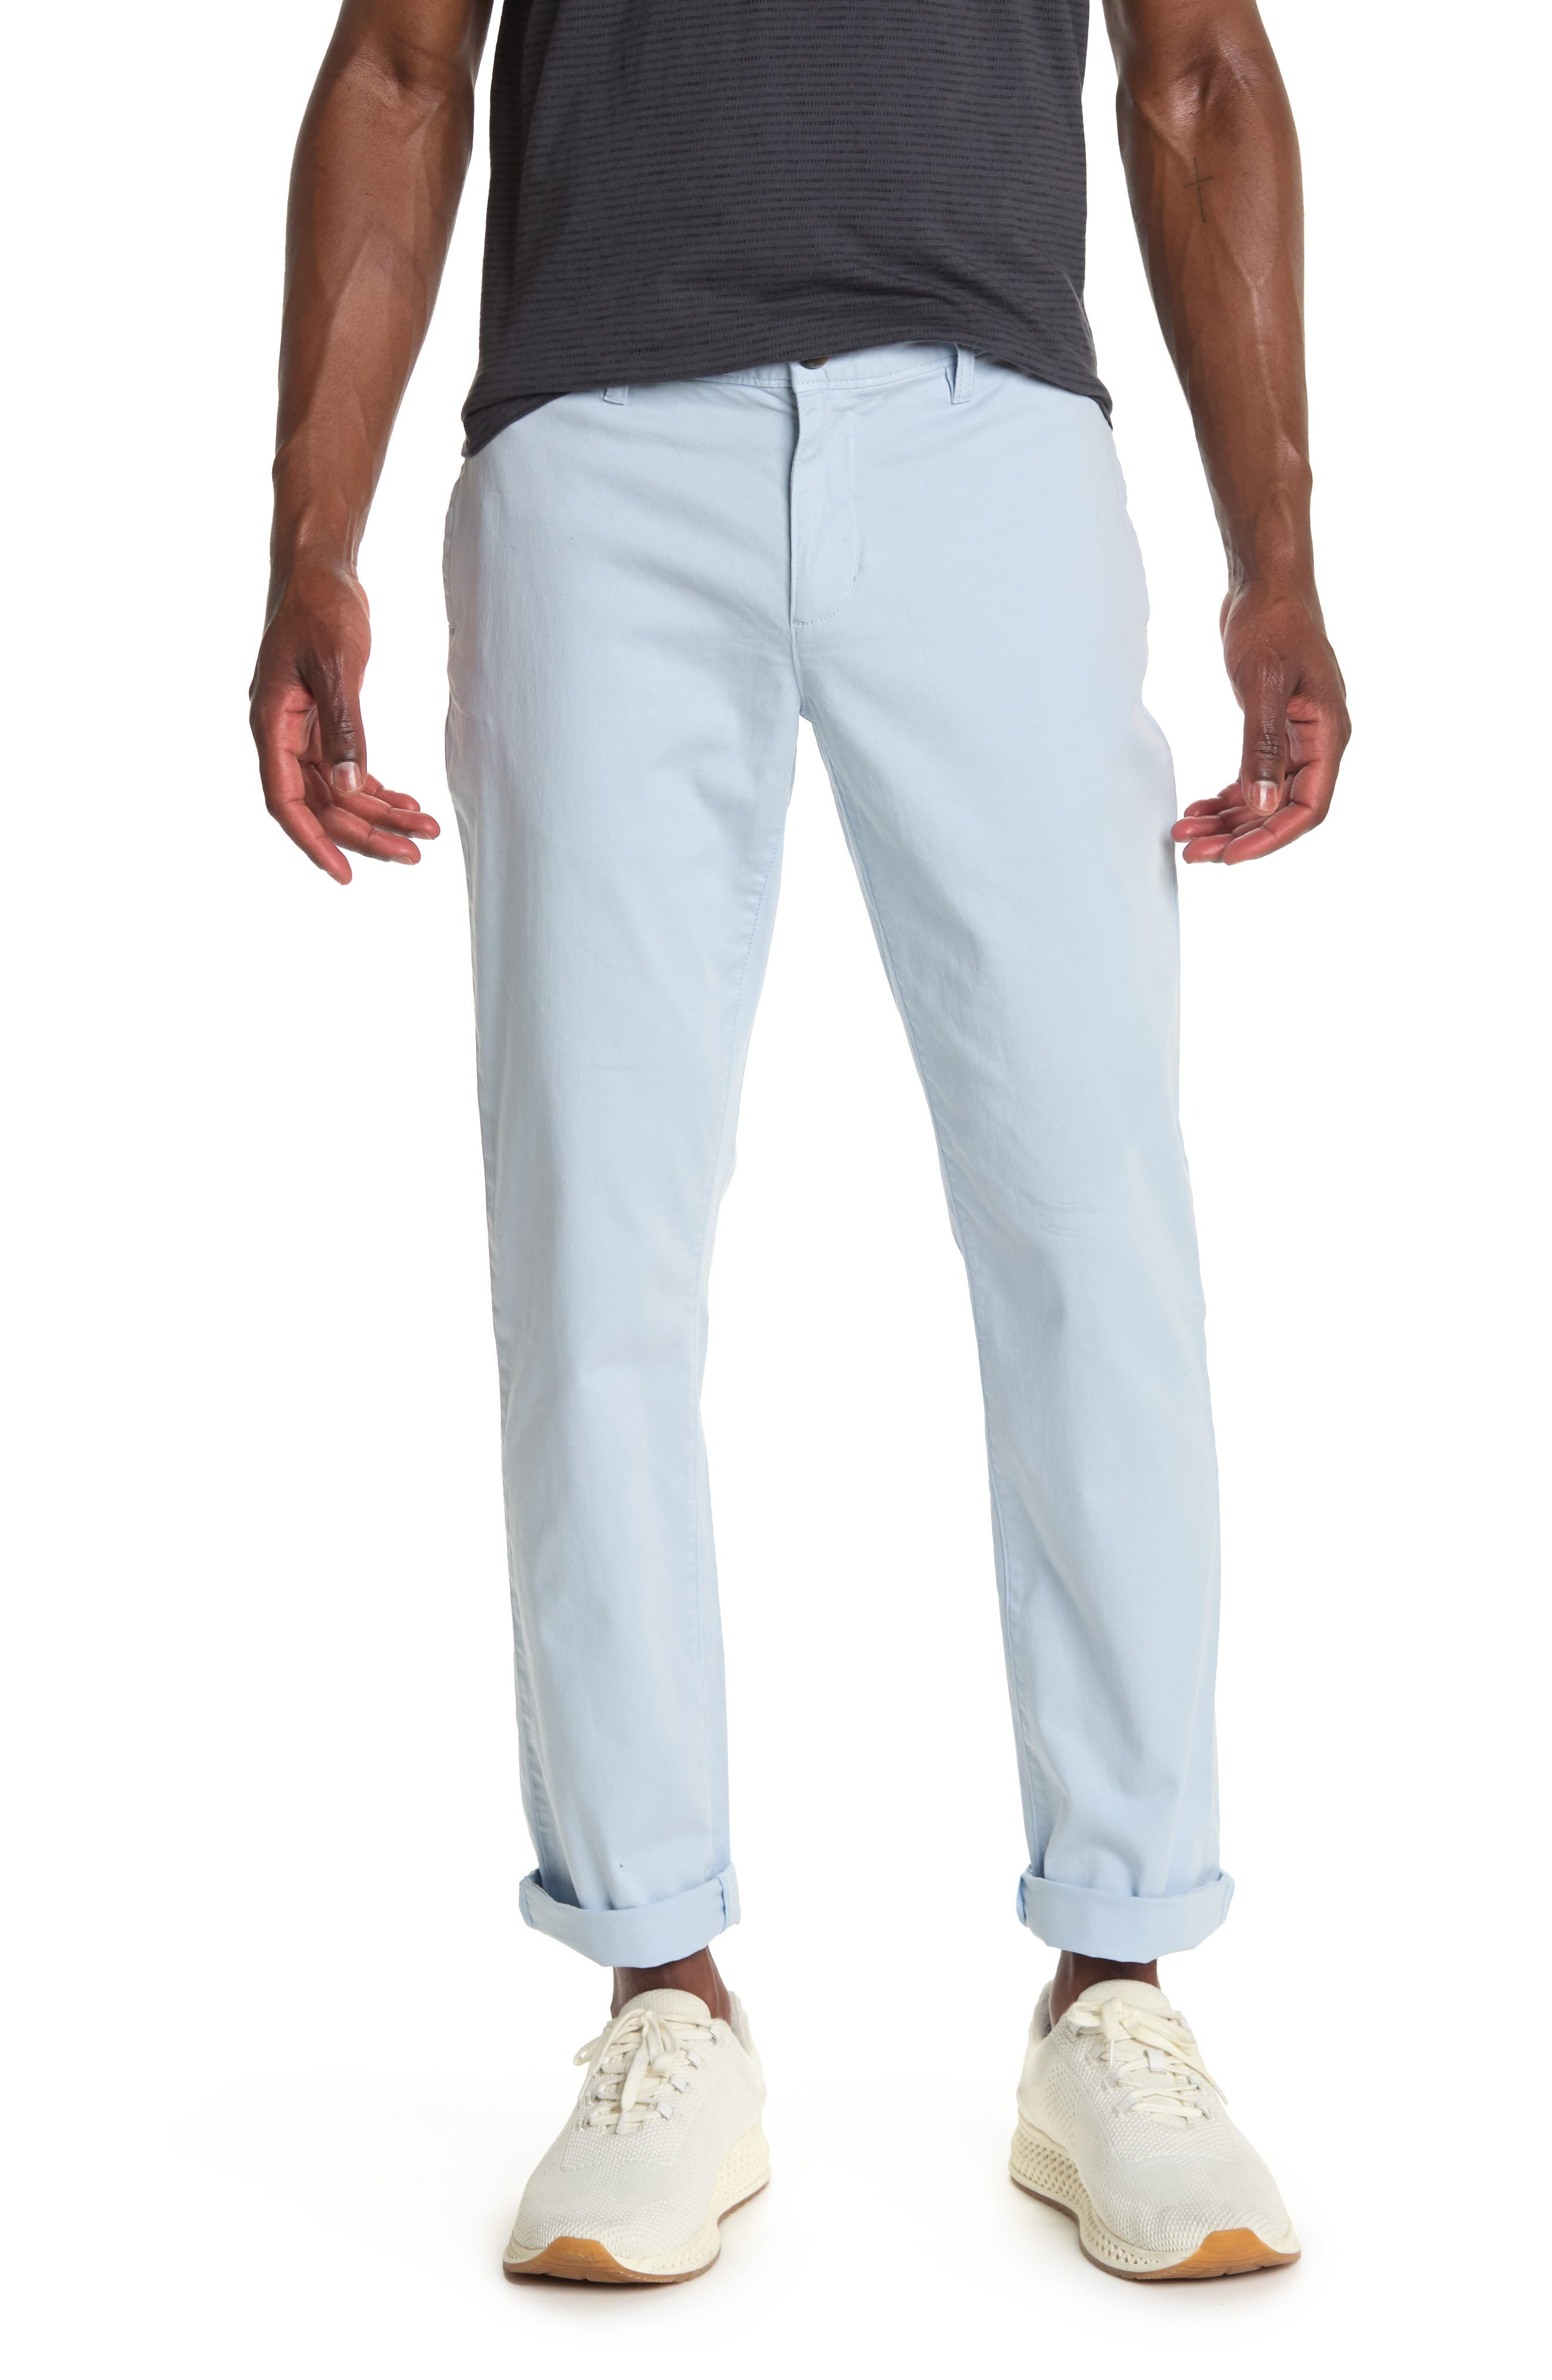 Image of 14th & Union The Wallin Stretch Twill Chino Pants